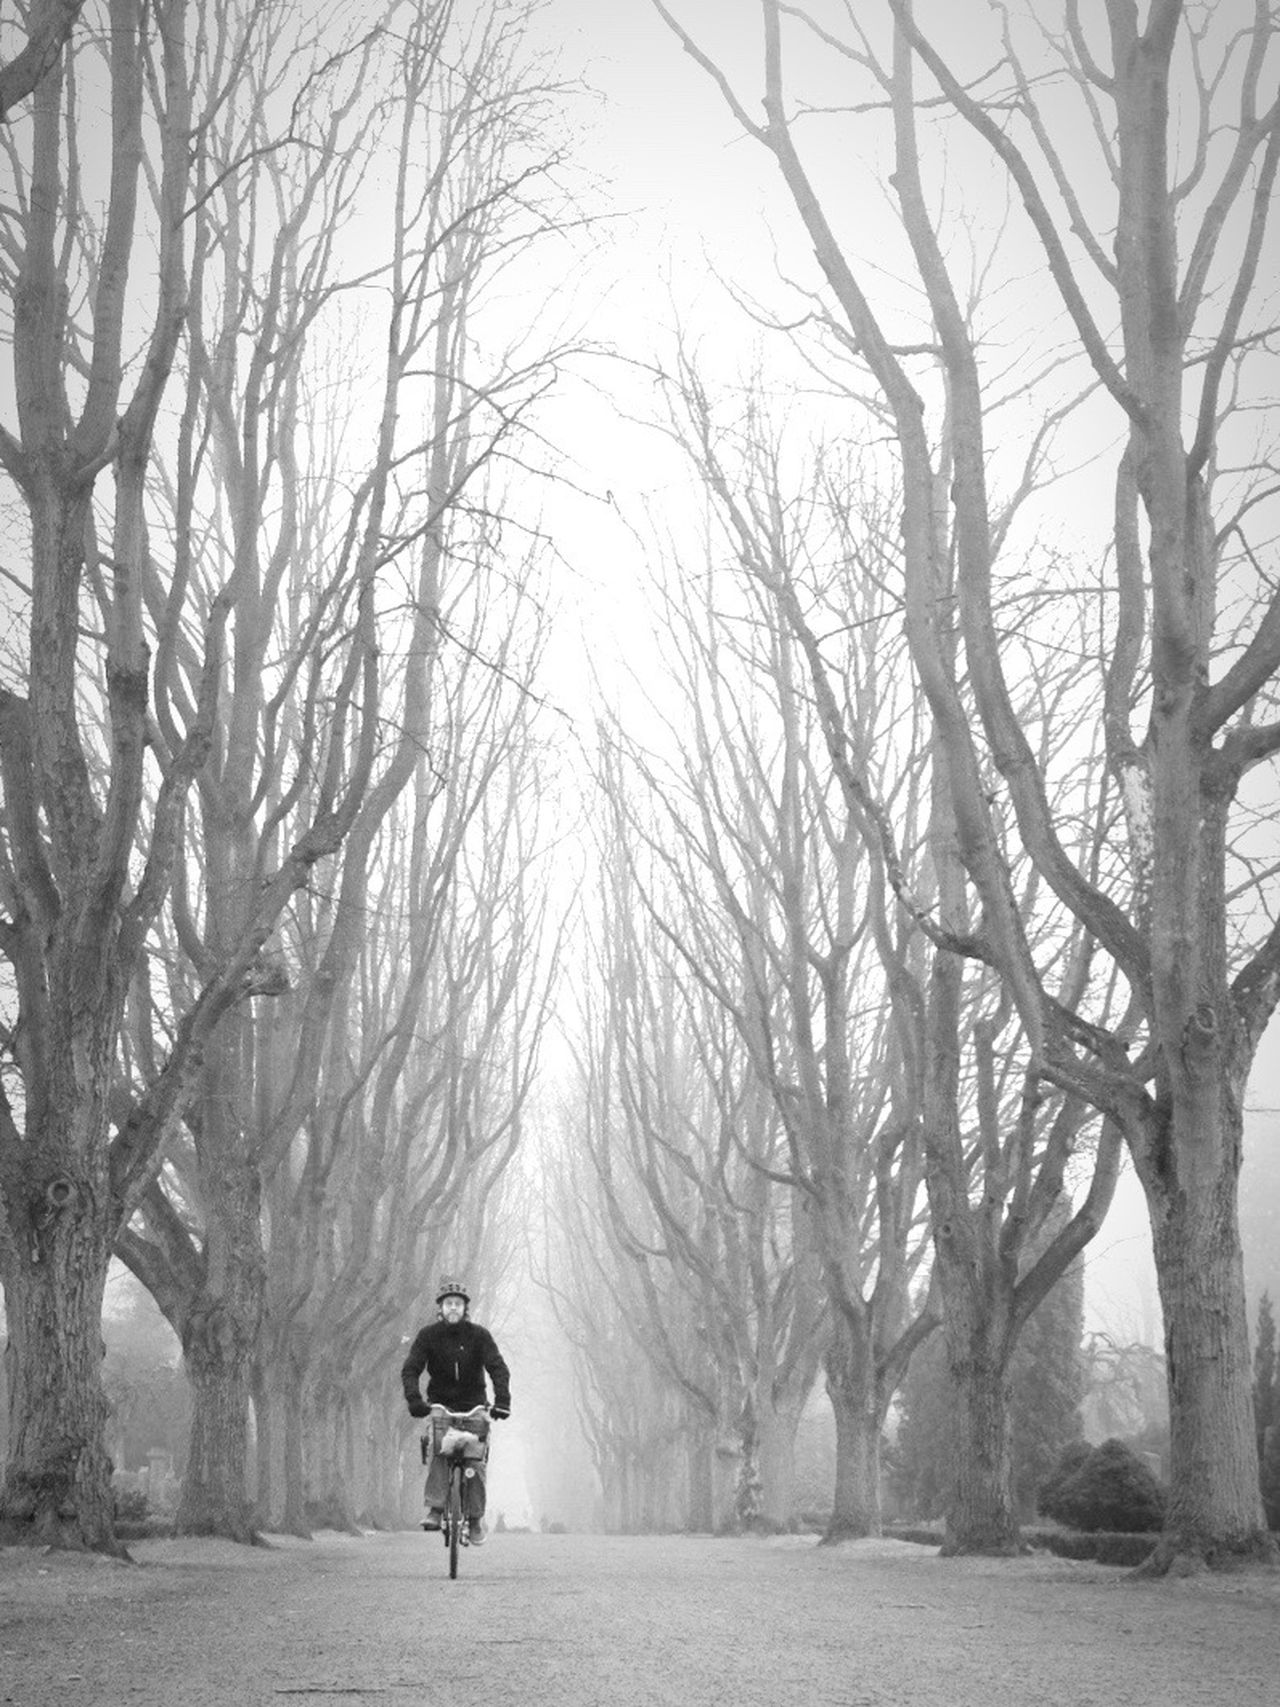 Winter One Person Nature Shootermag Monochrome Bw_collection Black And White Fog Street Photography Outdoors